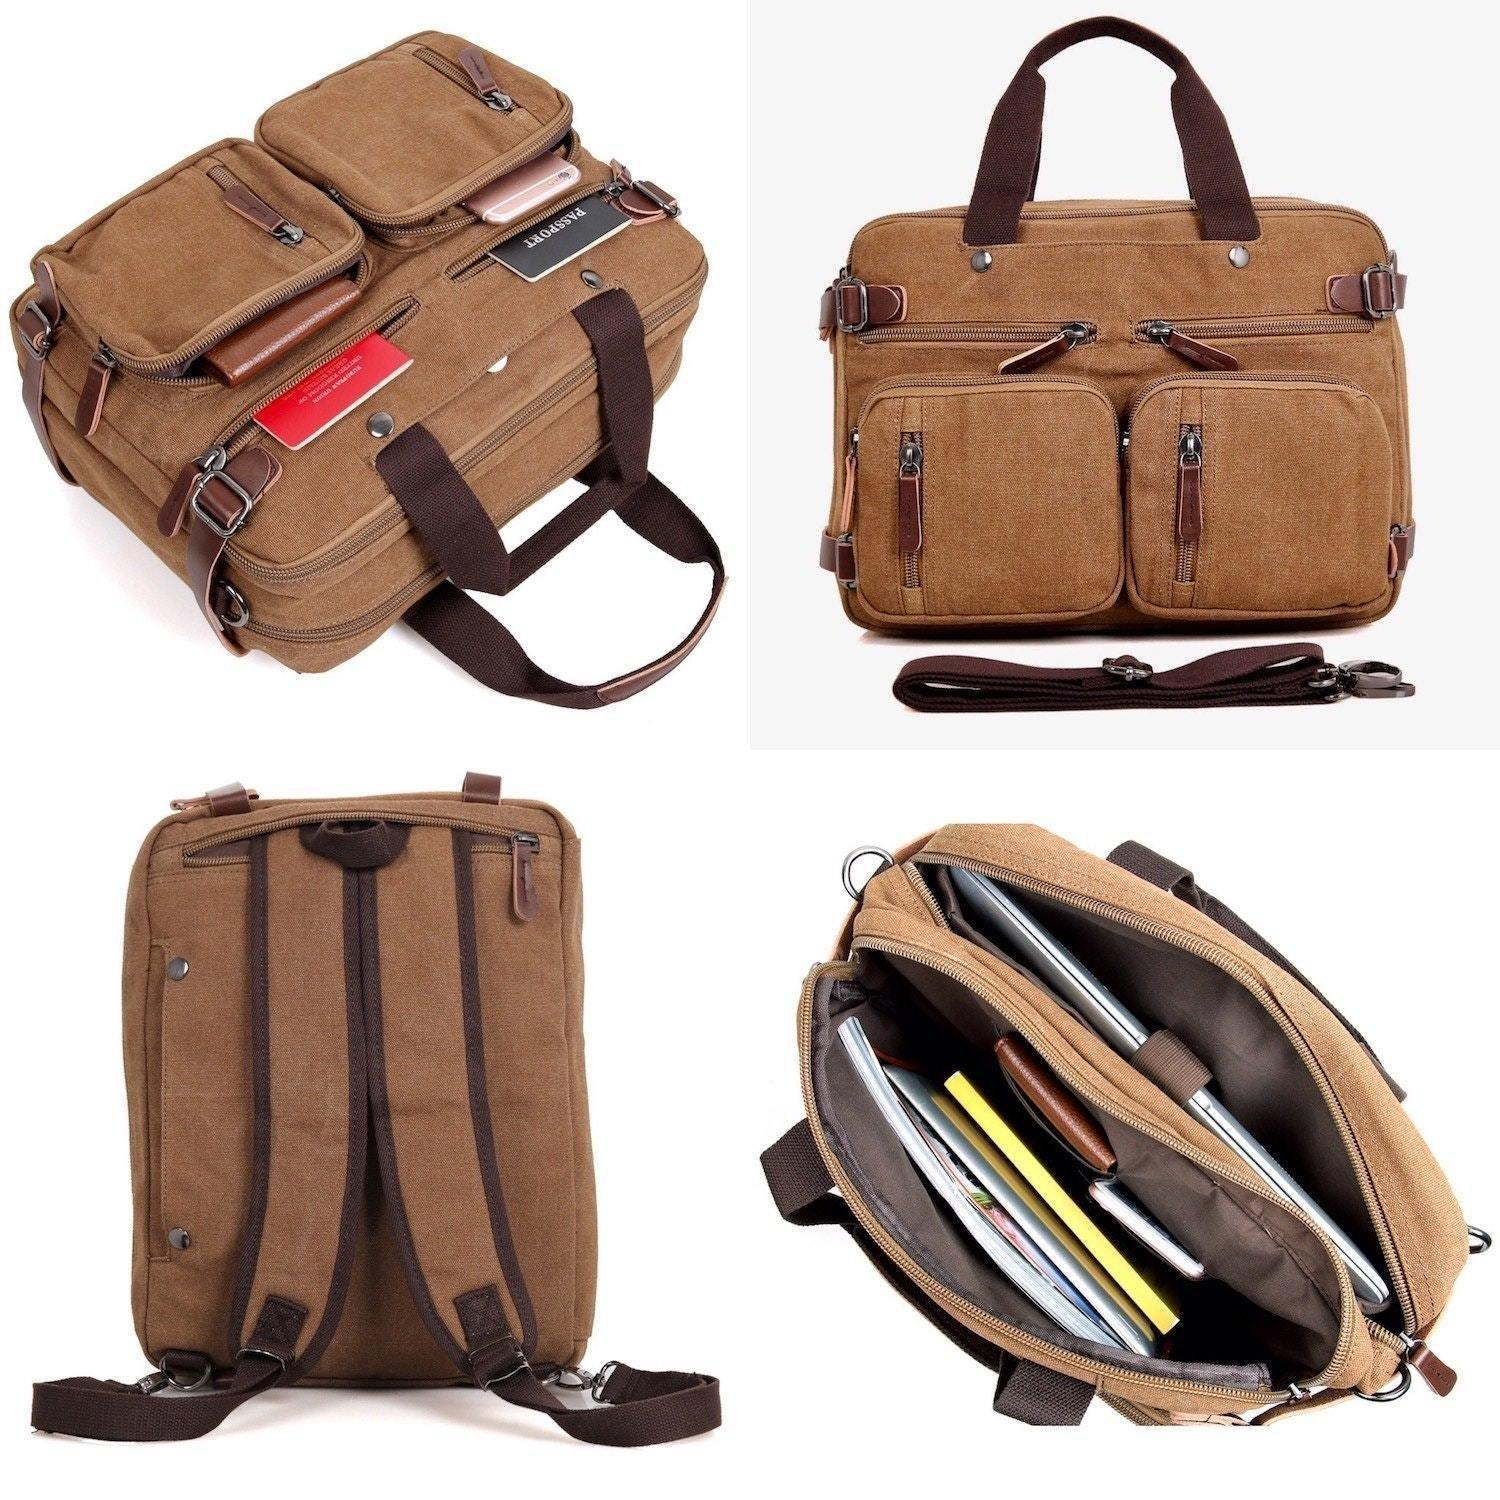 Clean Vintage Convertible Bags Briefcase Backpack Messenger Bag for Men  Women - Clean Vintage 22a805adc37dc